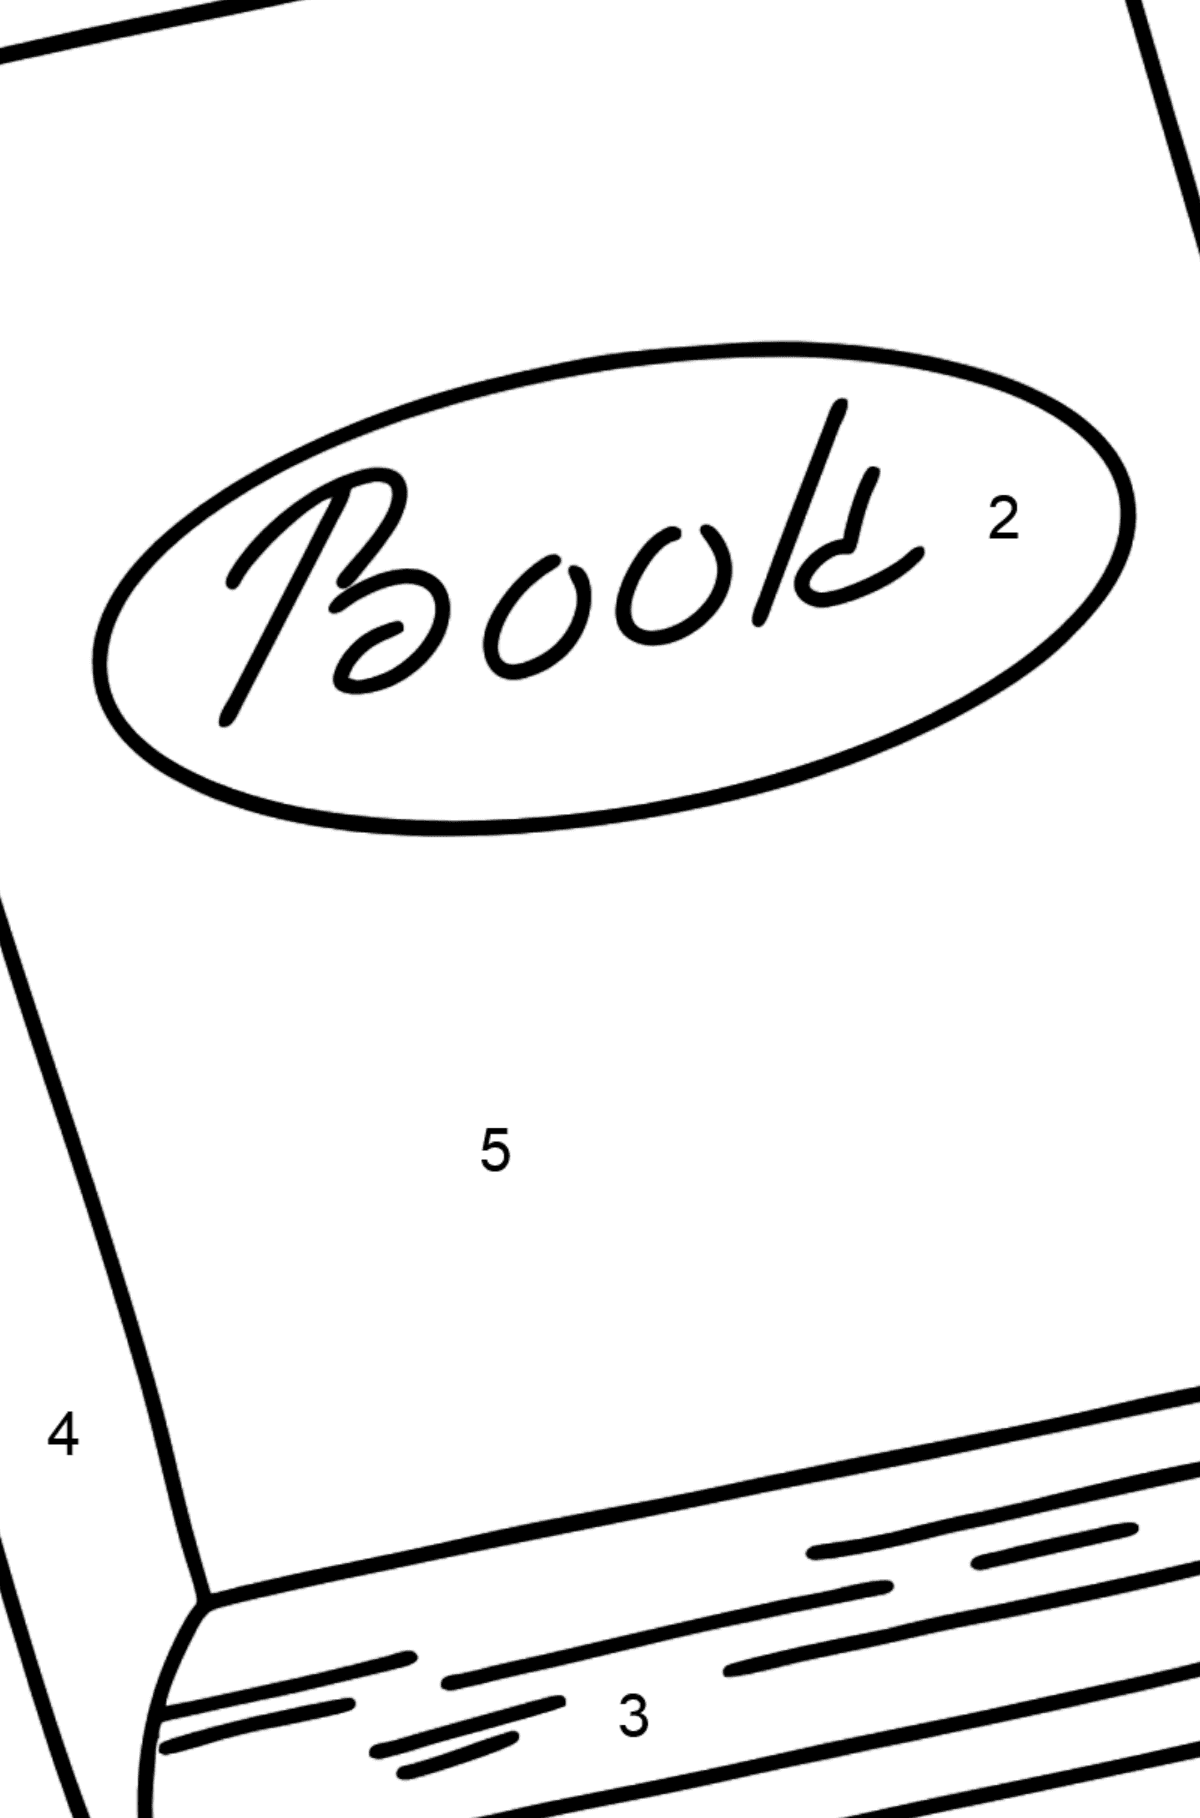 Book coloring page - Coloring by Numbers for Kids